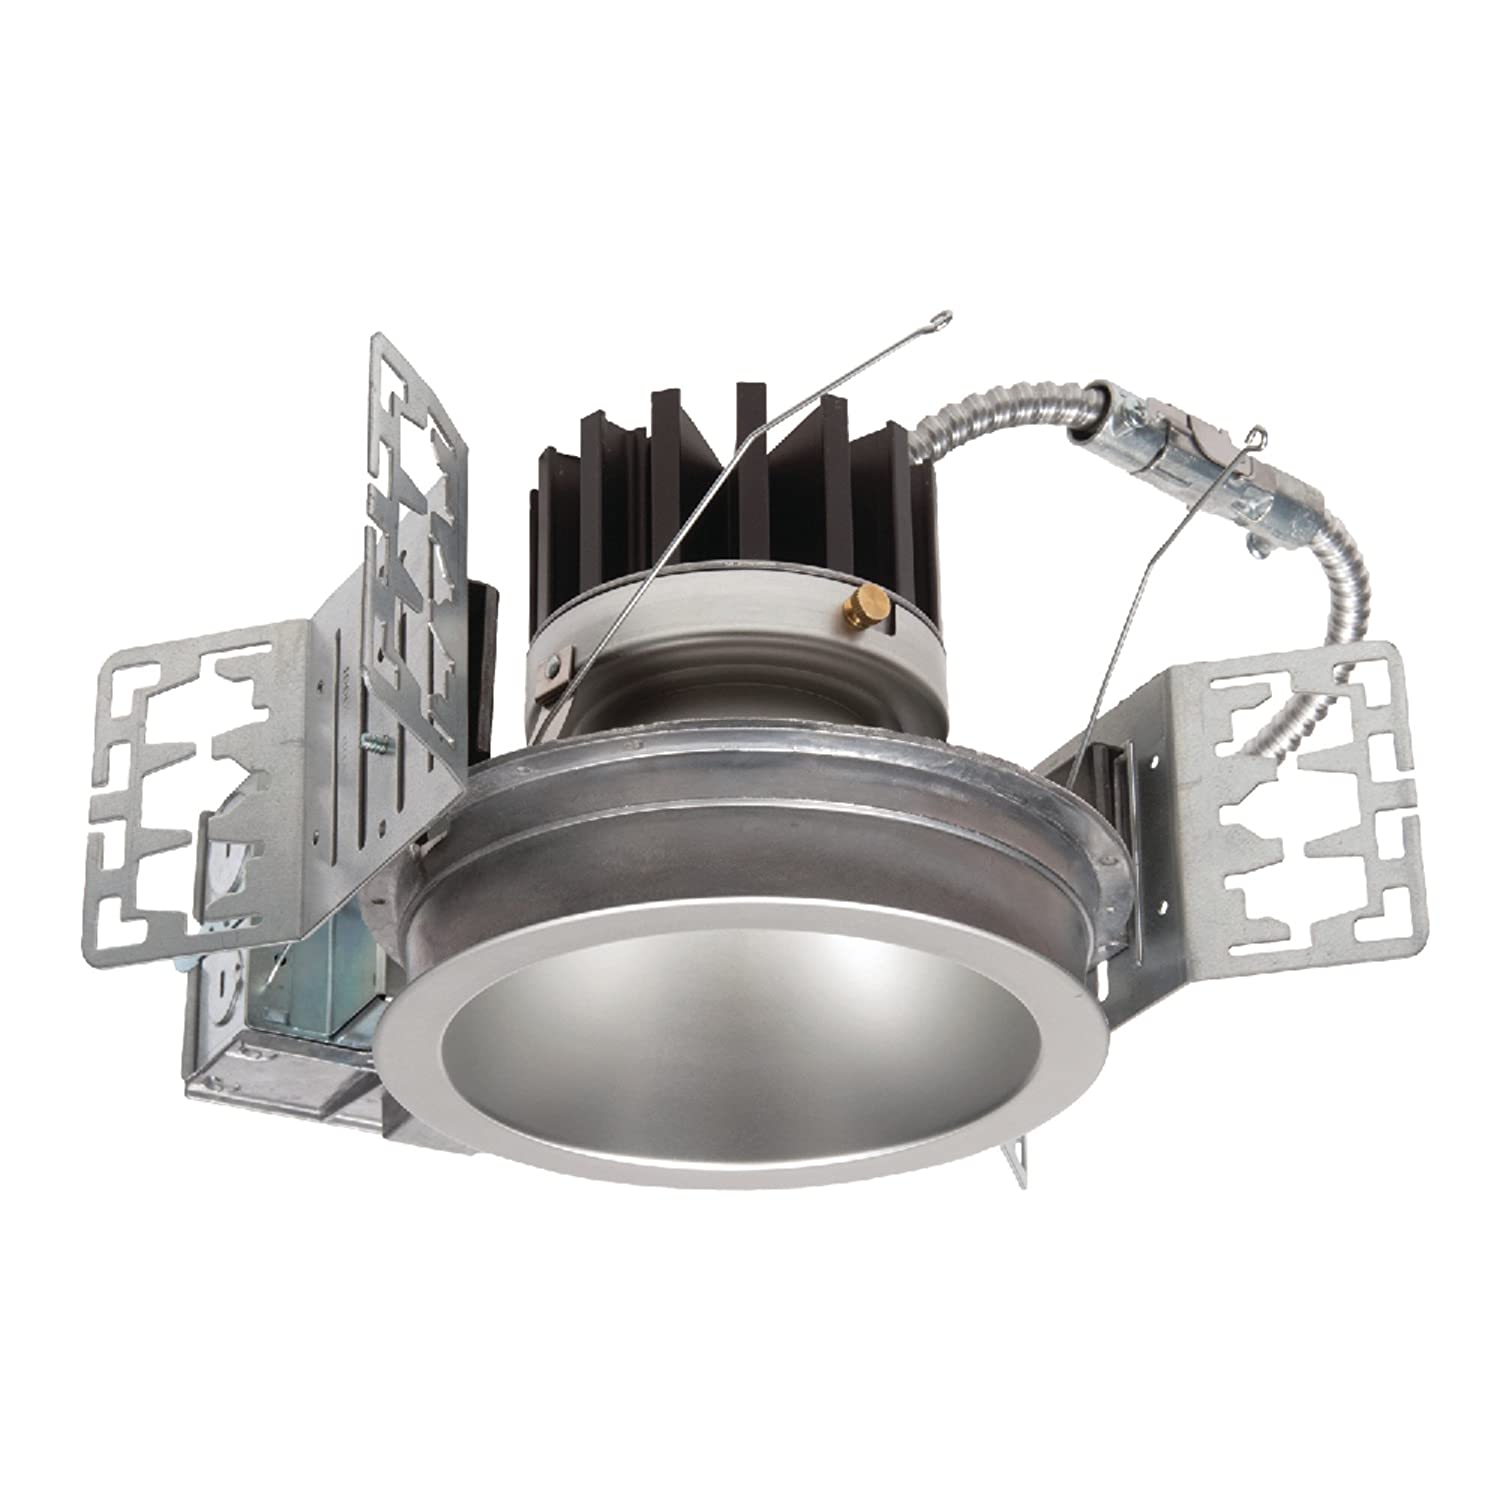 Portfolio EU4B10209035 EU4B 4 Raw Finish Integrated LED Recessed Trim Module 90 CRI 3500K CCT